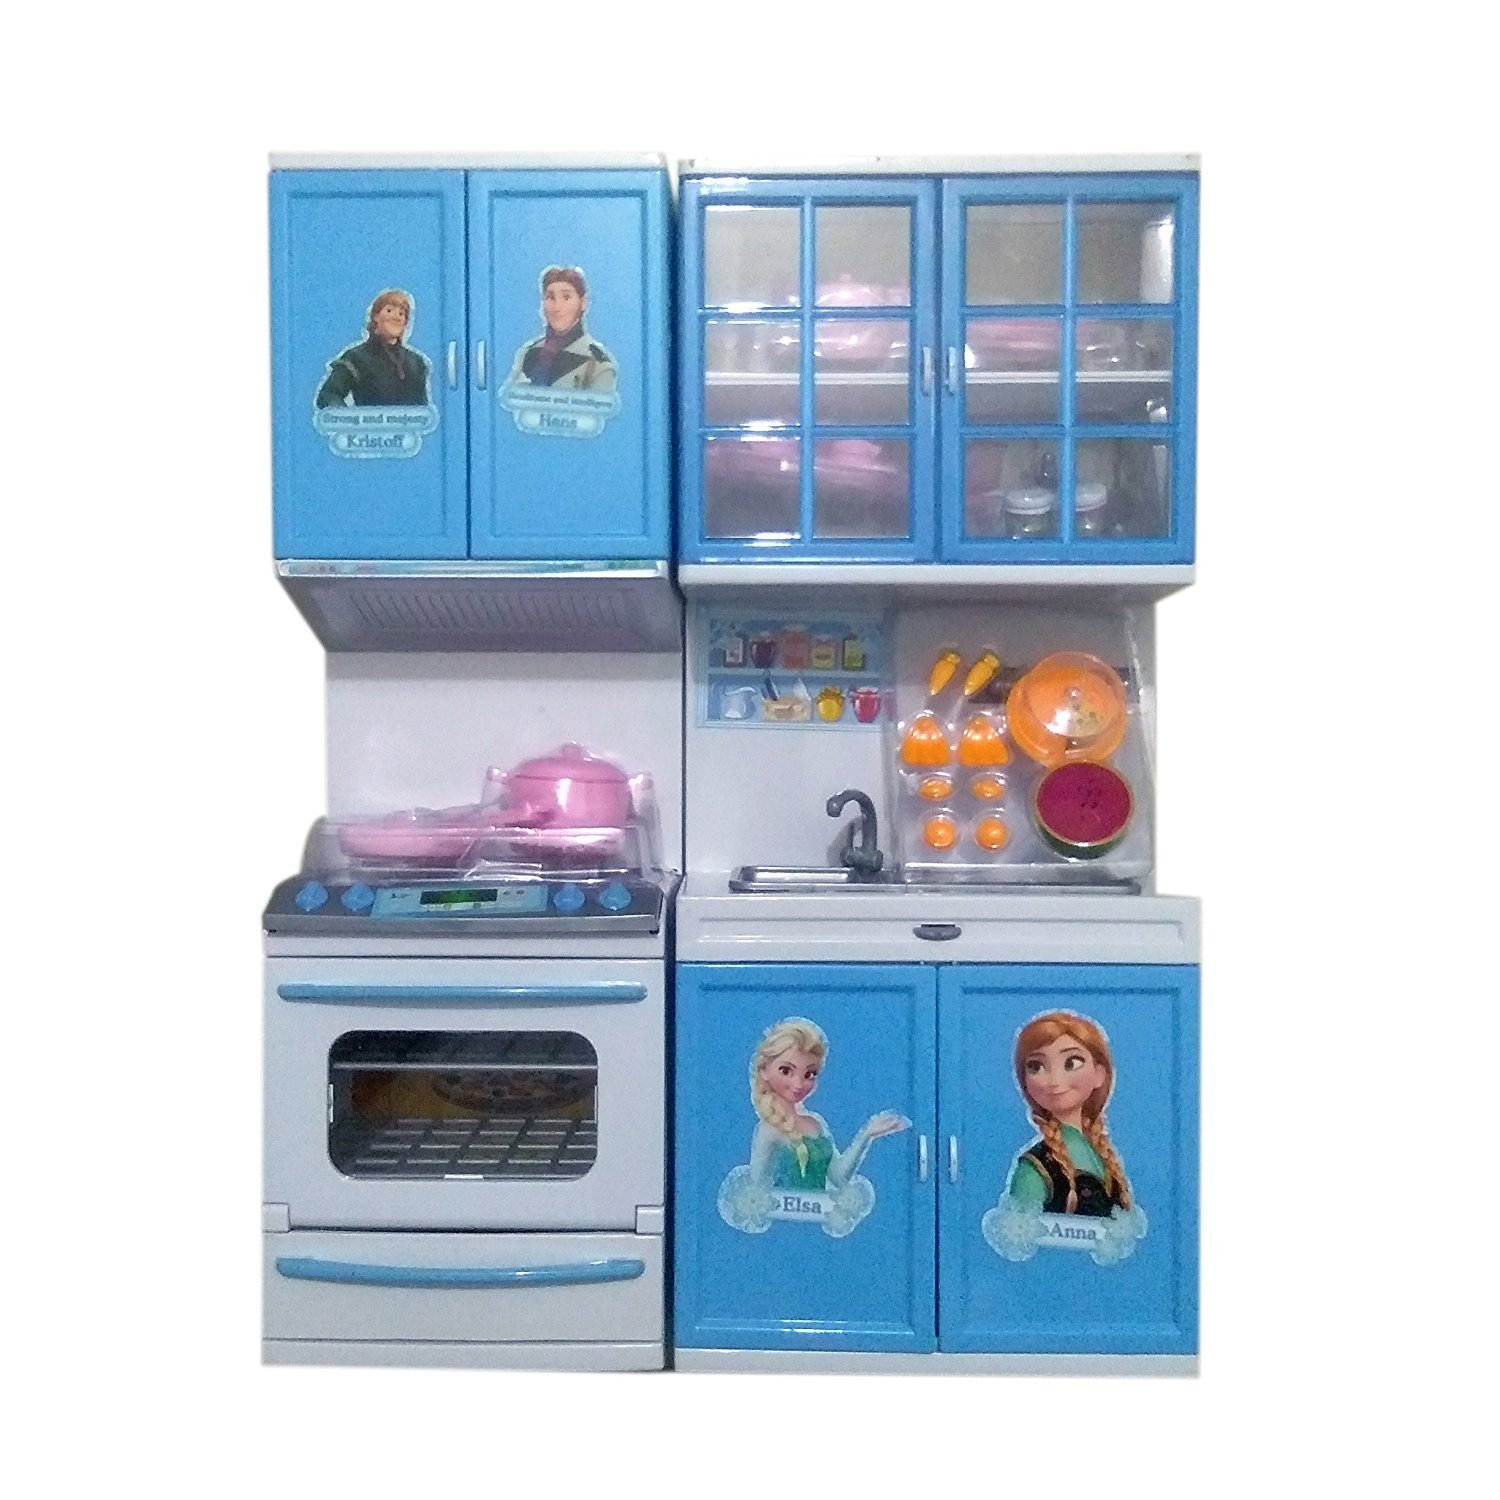 Buy tabu toys world beautiful frozen modern kitchen set for girls blue online at low prices in india amazon in